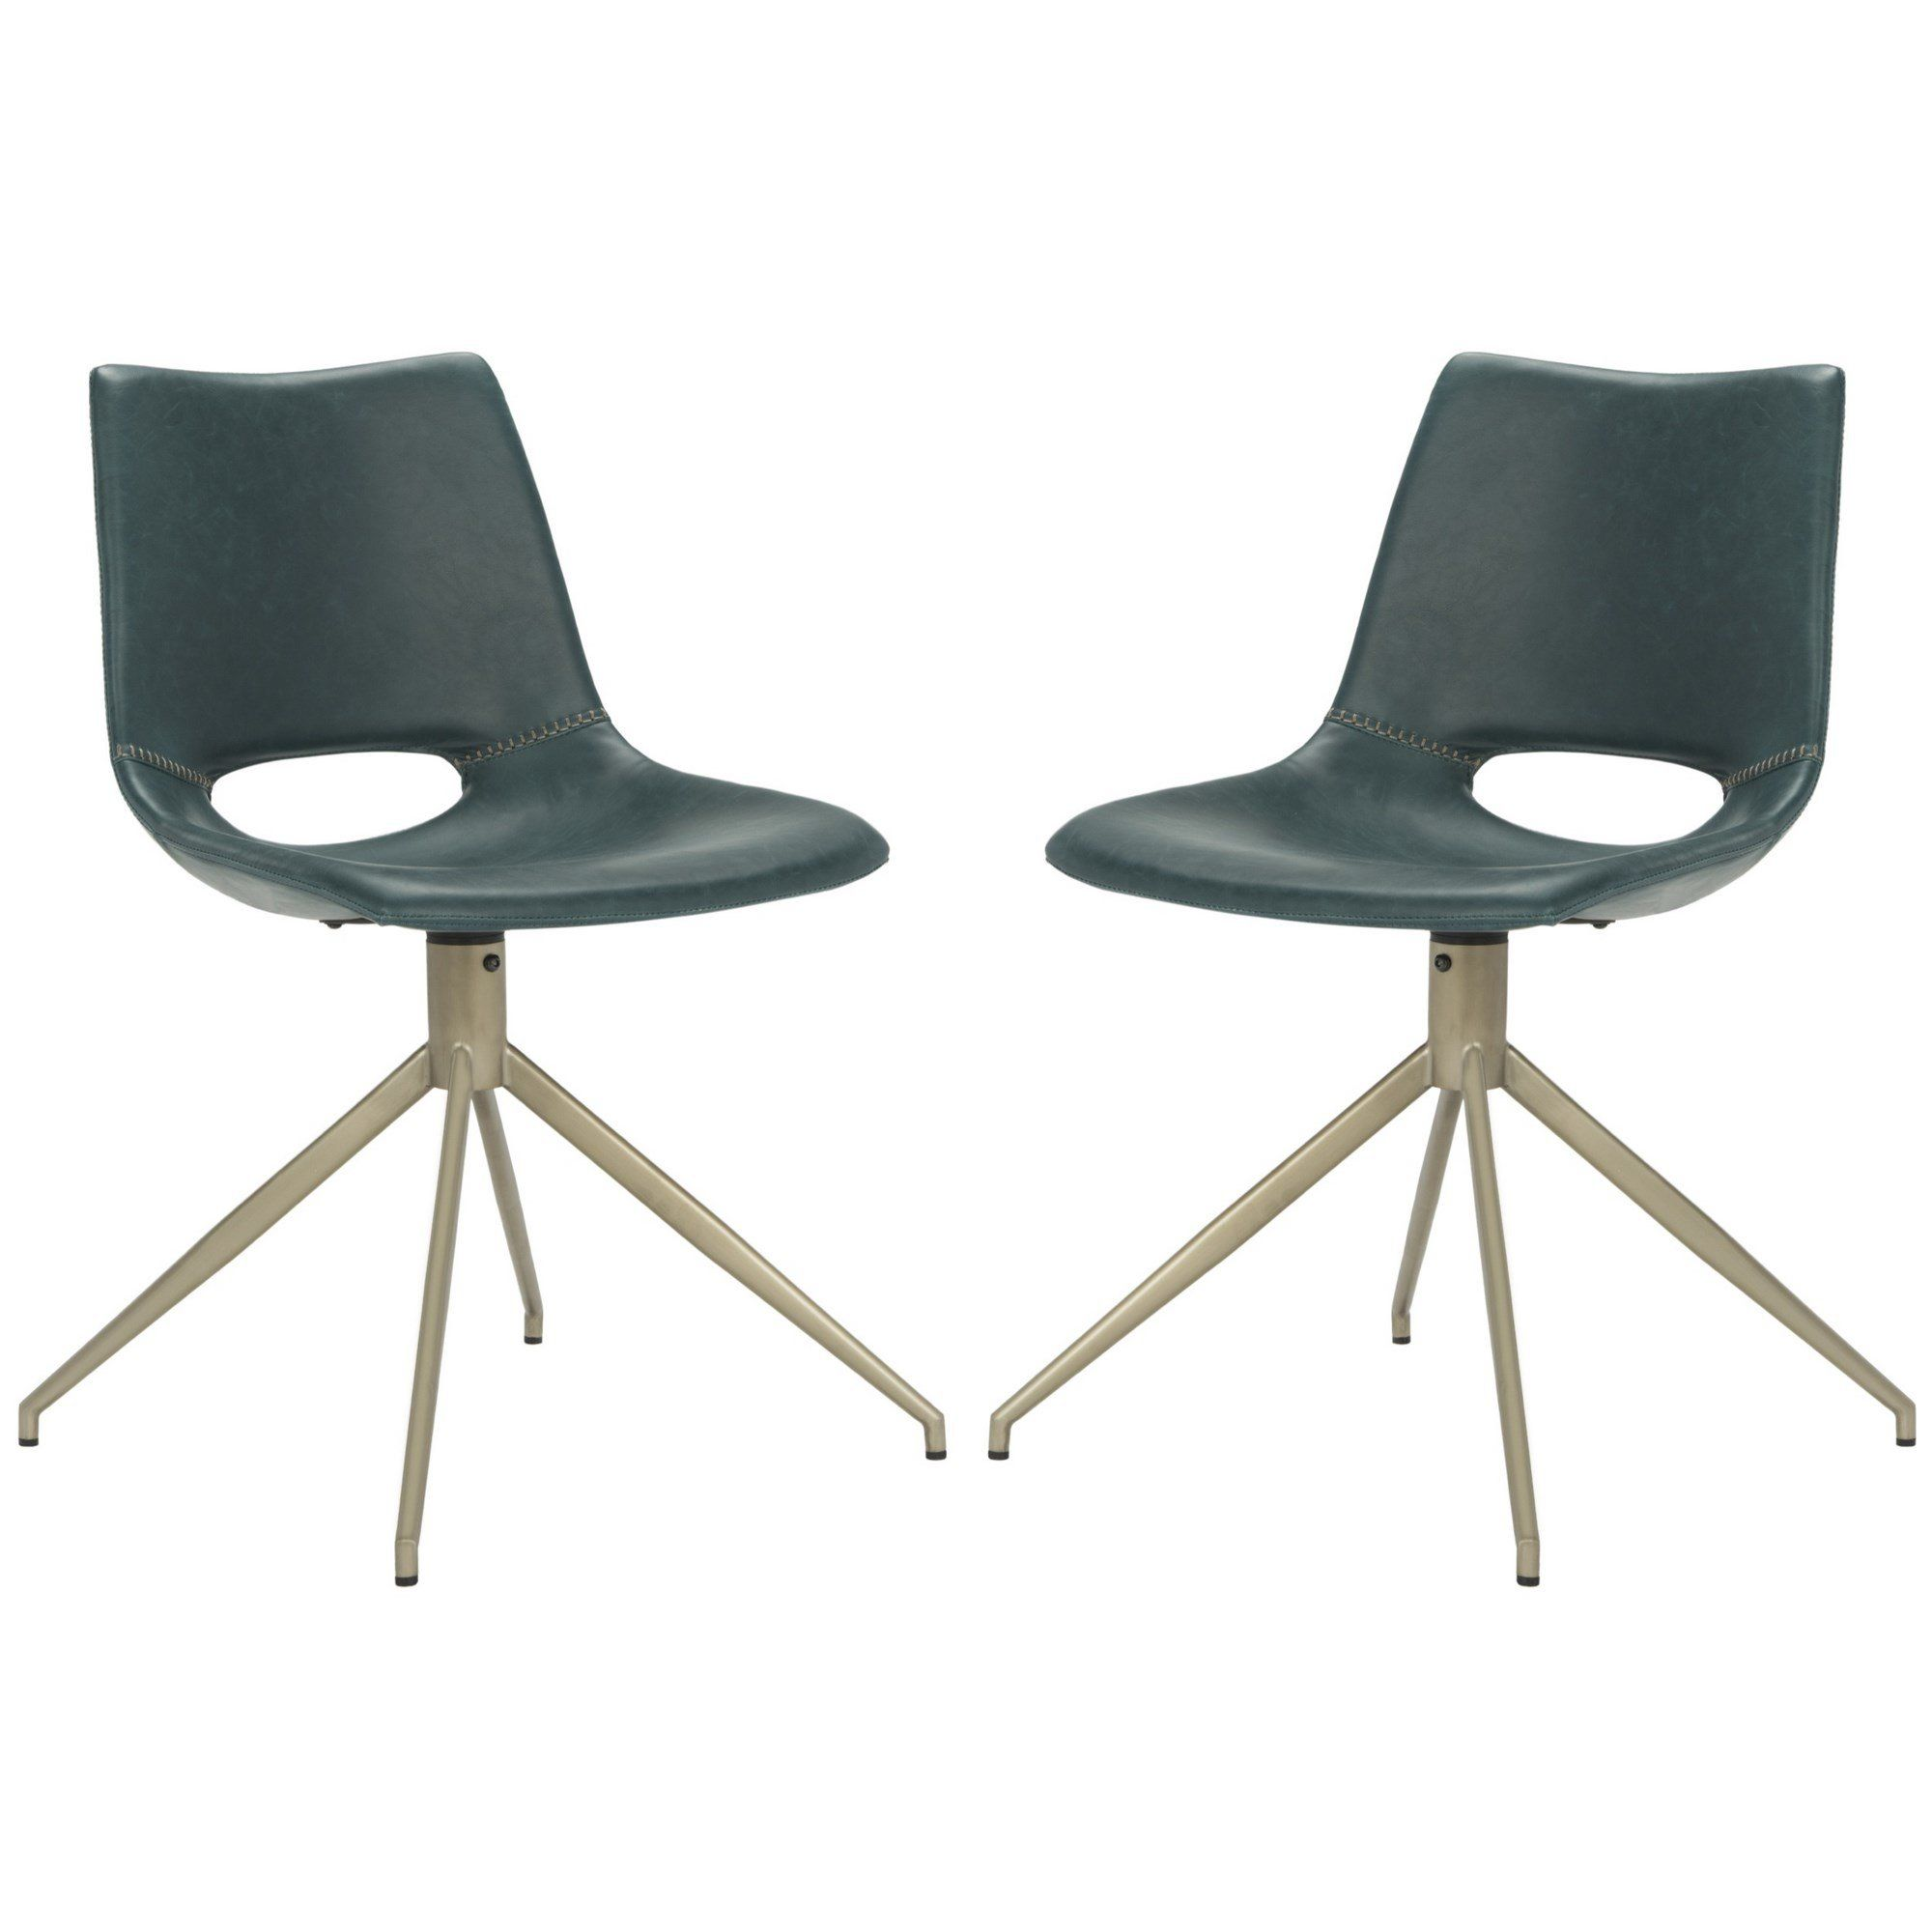 Cordelia Swivel Side Chair  Skimoore House  Pinterest  Side Simple Leather Swivel Dining Room Chairs Decorating Design